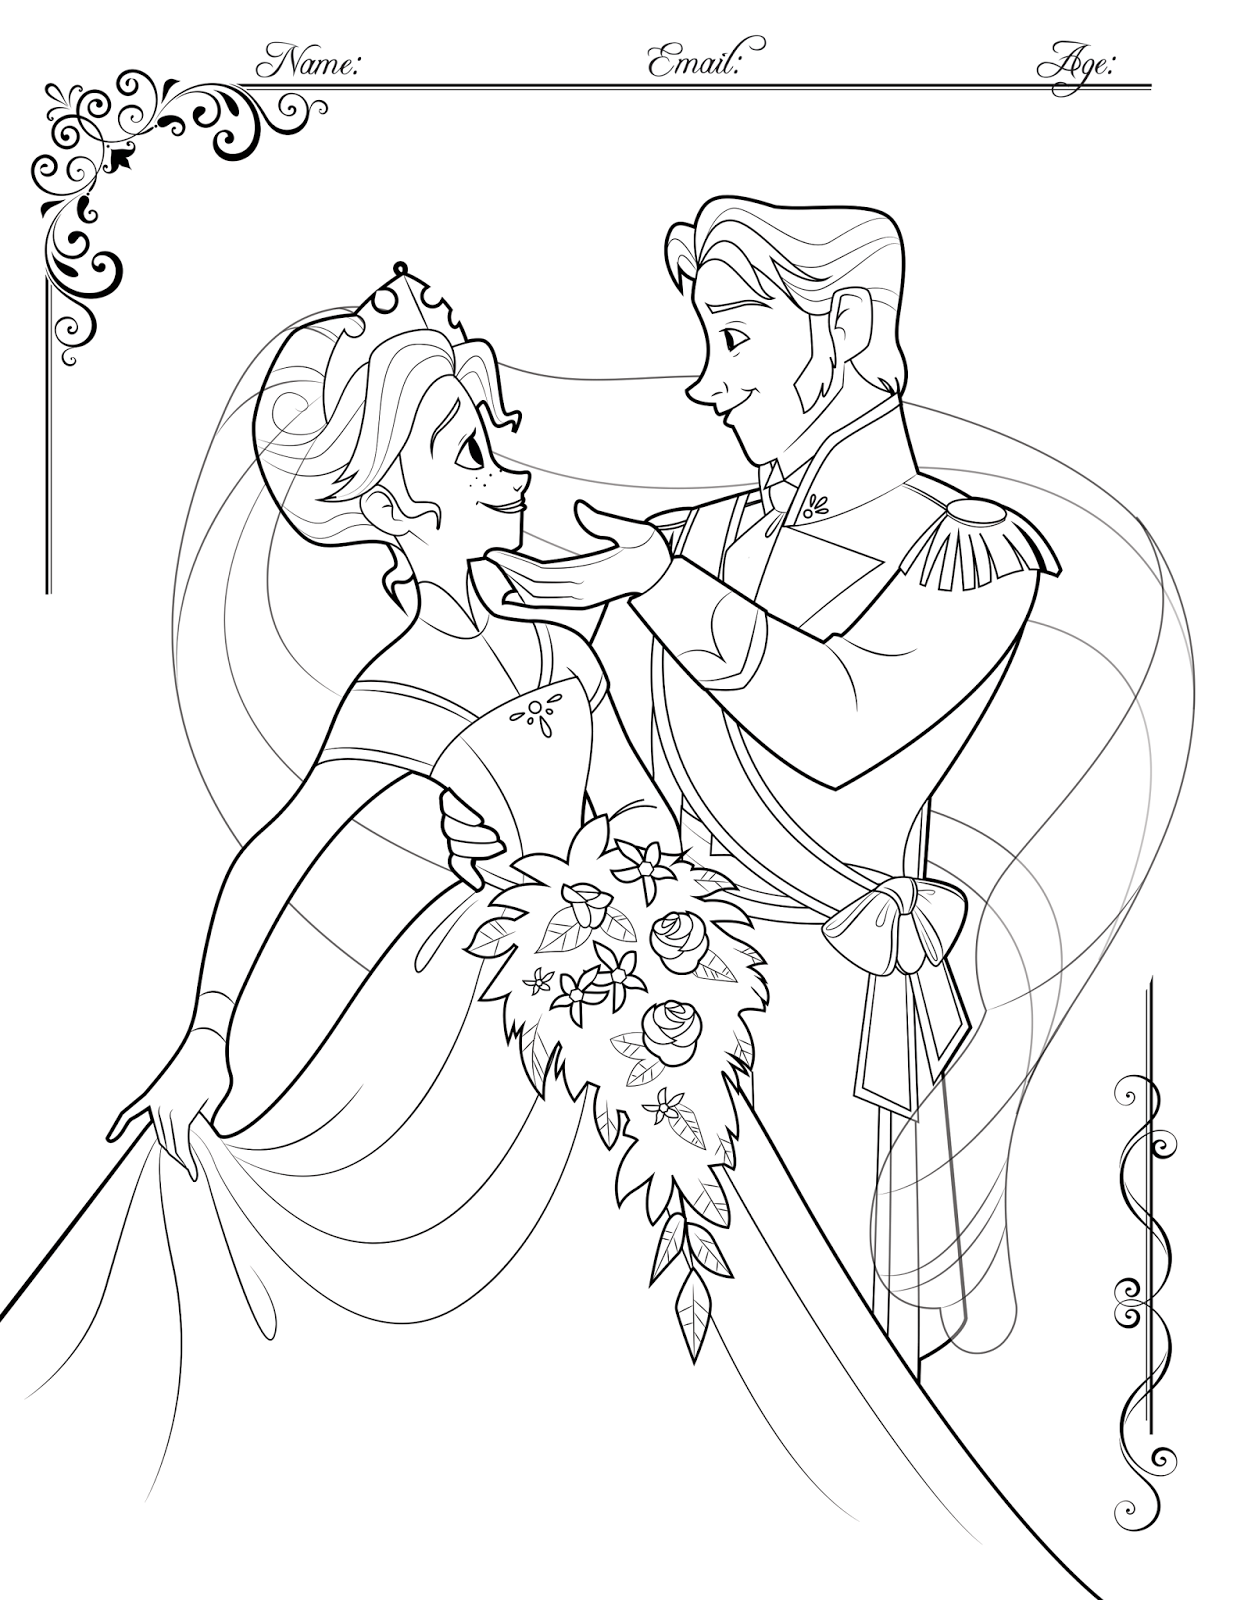 Coloring Contest On My Blog Hans And Anna S Wedding Day Oh Come On They Had That Adorable Song Togethe Pagine Da Colorare Disney Libri Da Colorare Disegni